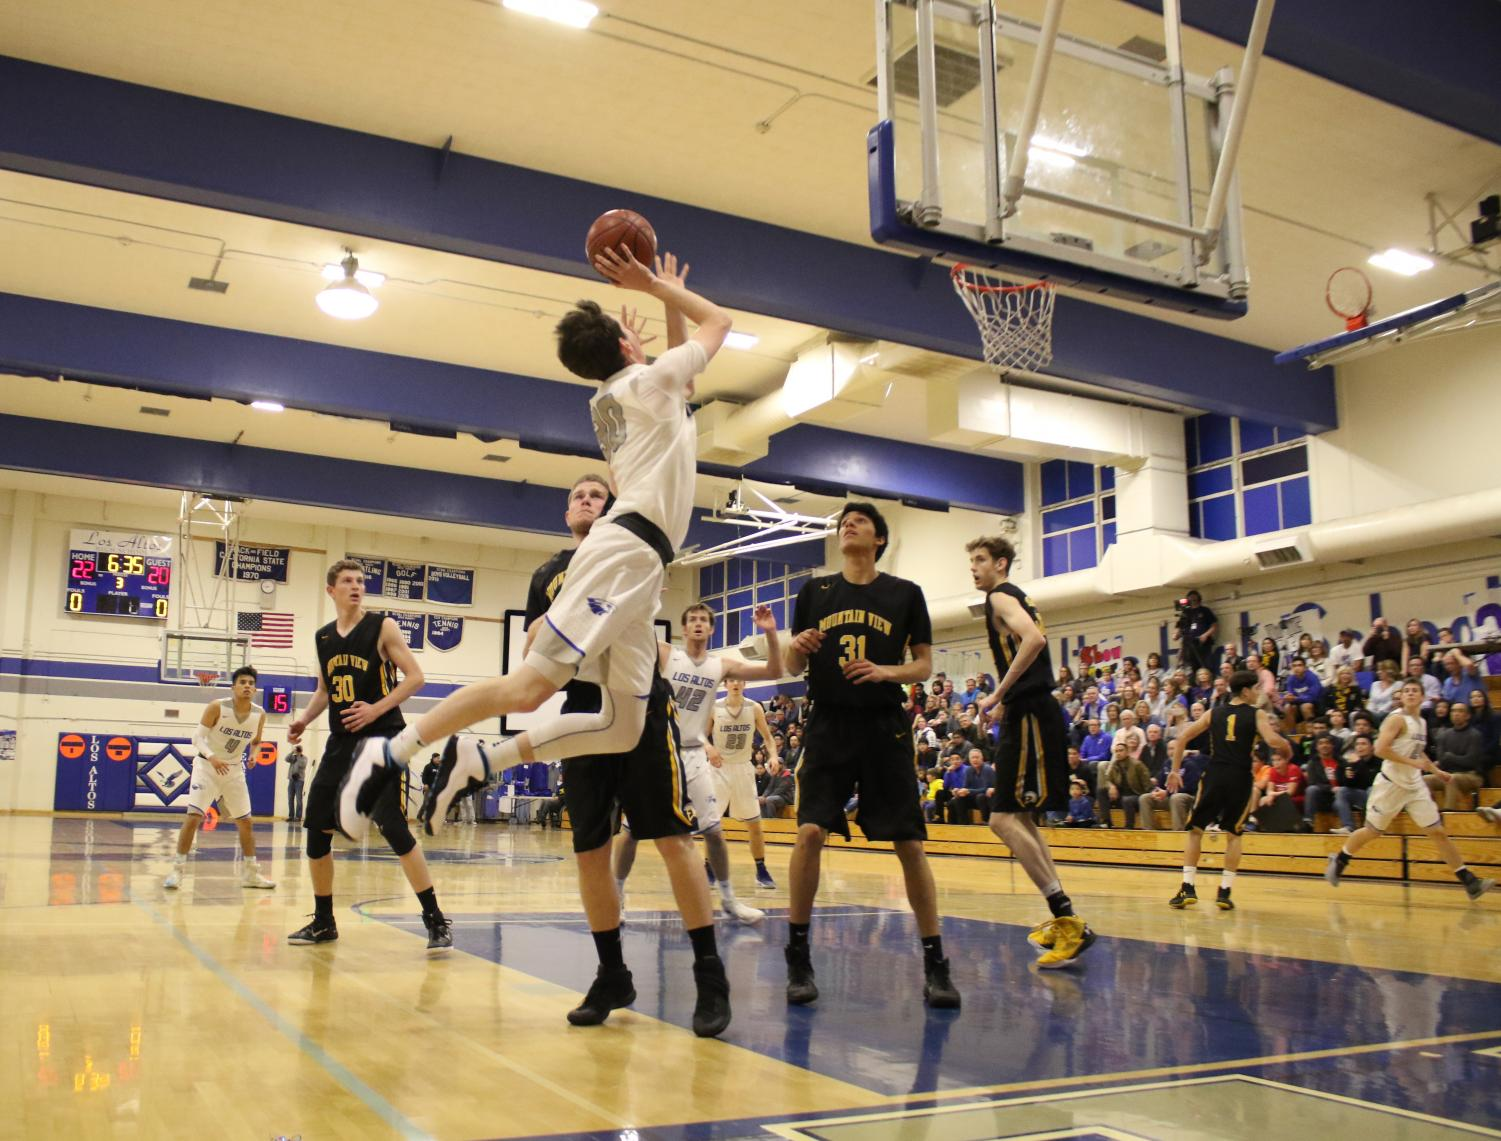 Senior Matt Eberle leaps up for a shot in Los Altos' 44-35 win over Mountain View at yesterday's Senior Night game.